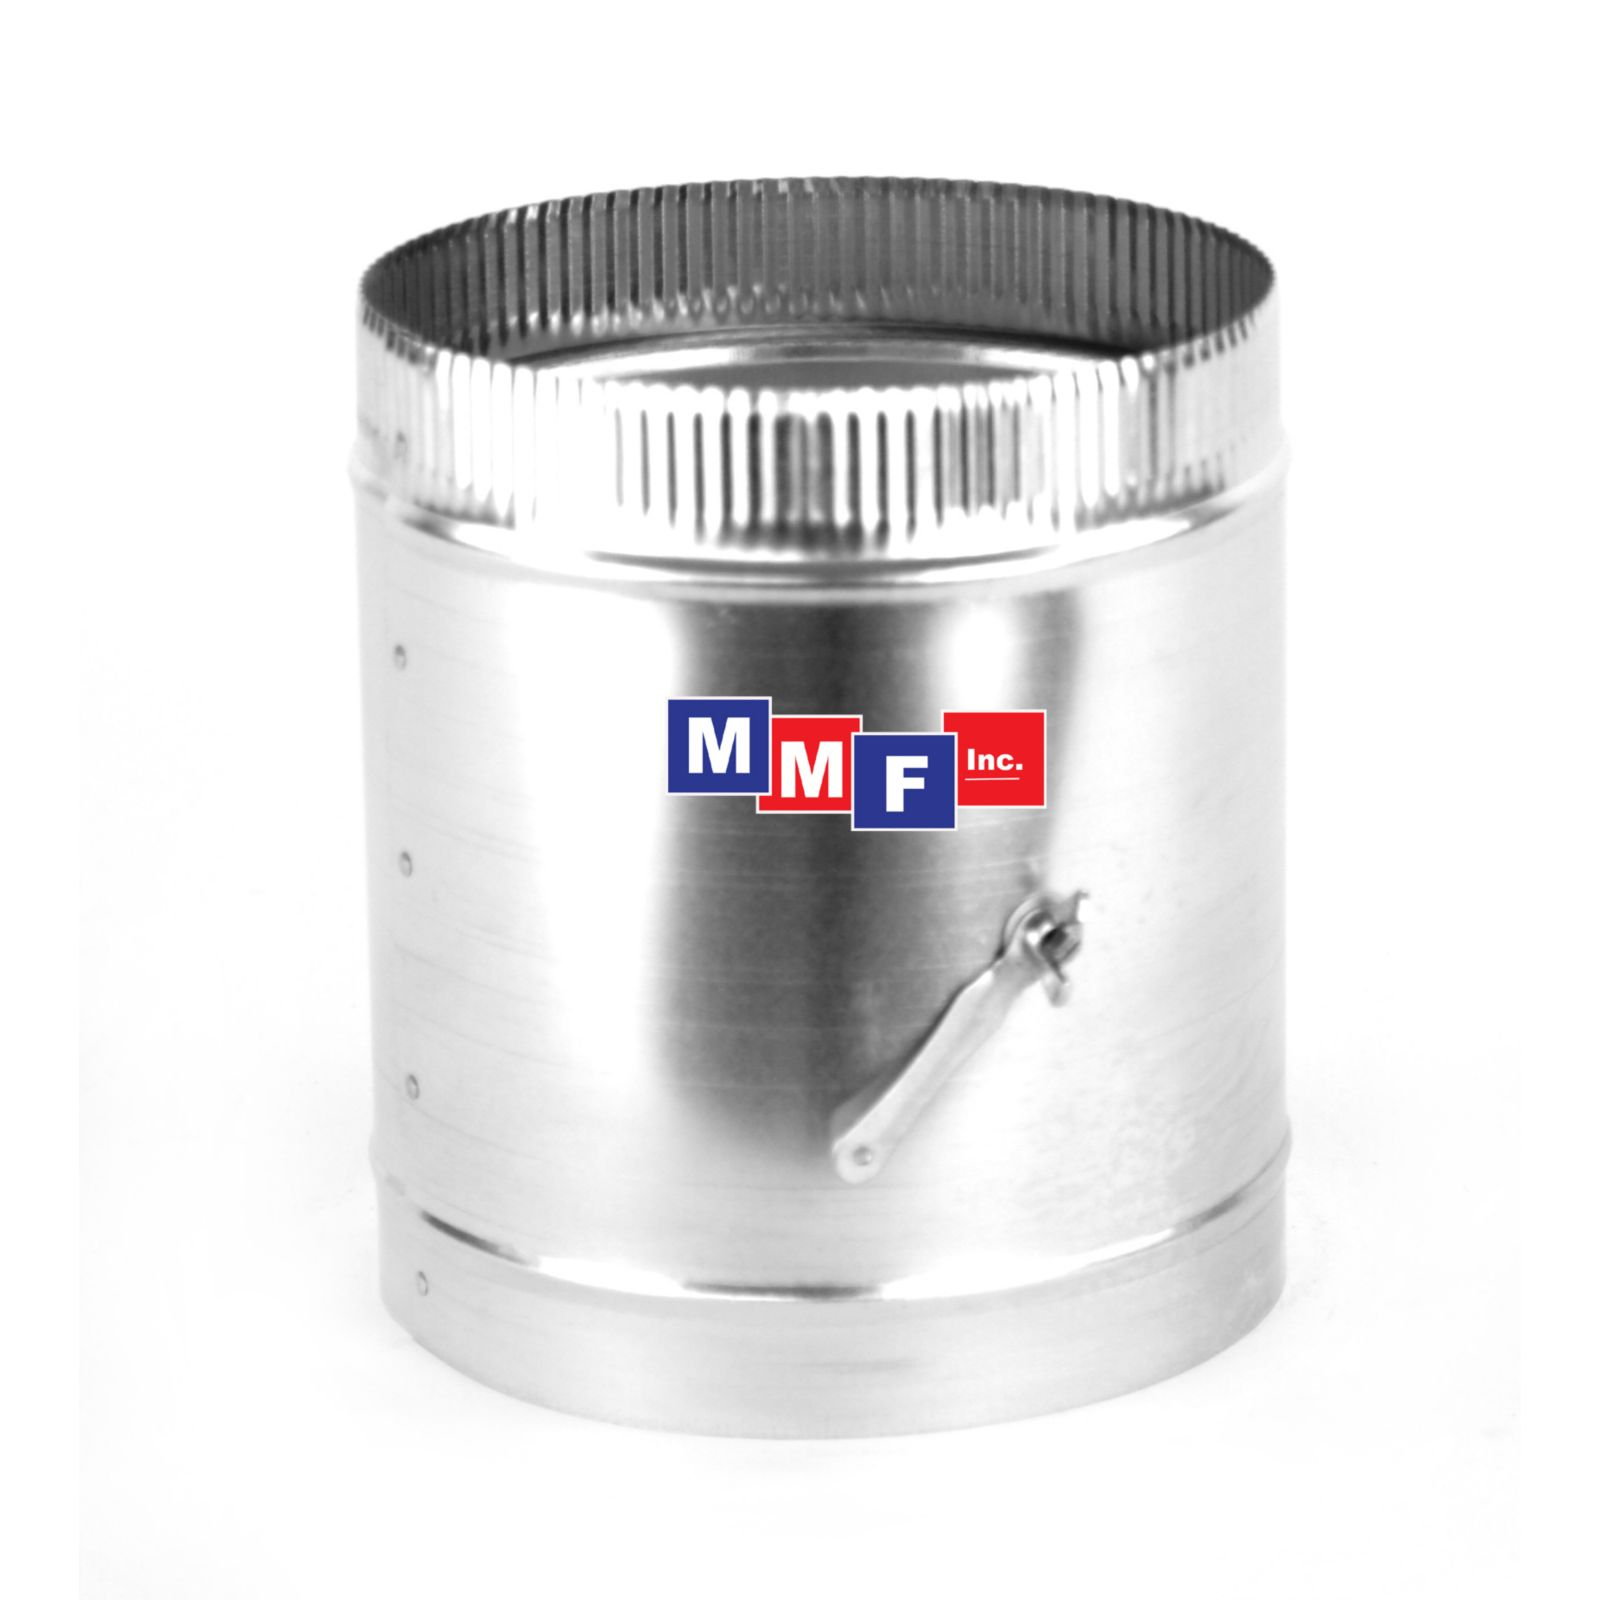 "Modular Metal DMSI10KSR195 - Sleeve - 26 Gauge/26 Gauge Damper - 10"" X12"" Long With 3/8"" Control Rod - 1.5"" Stand Off"